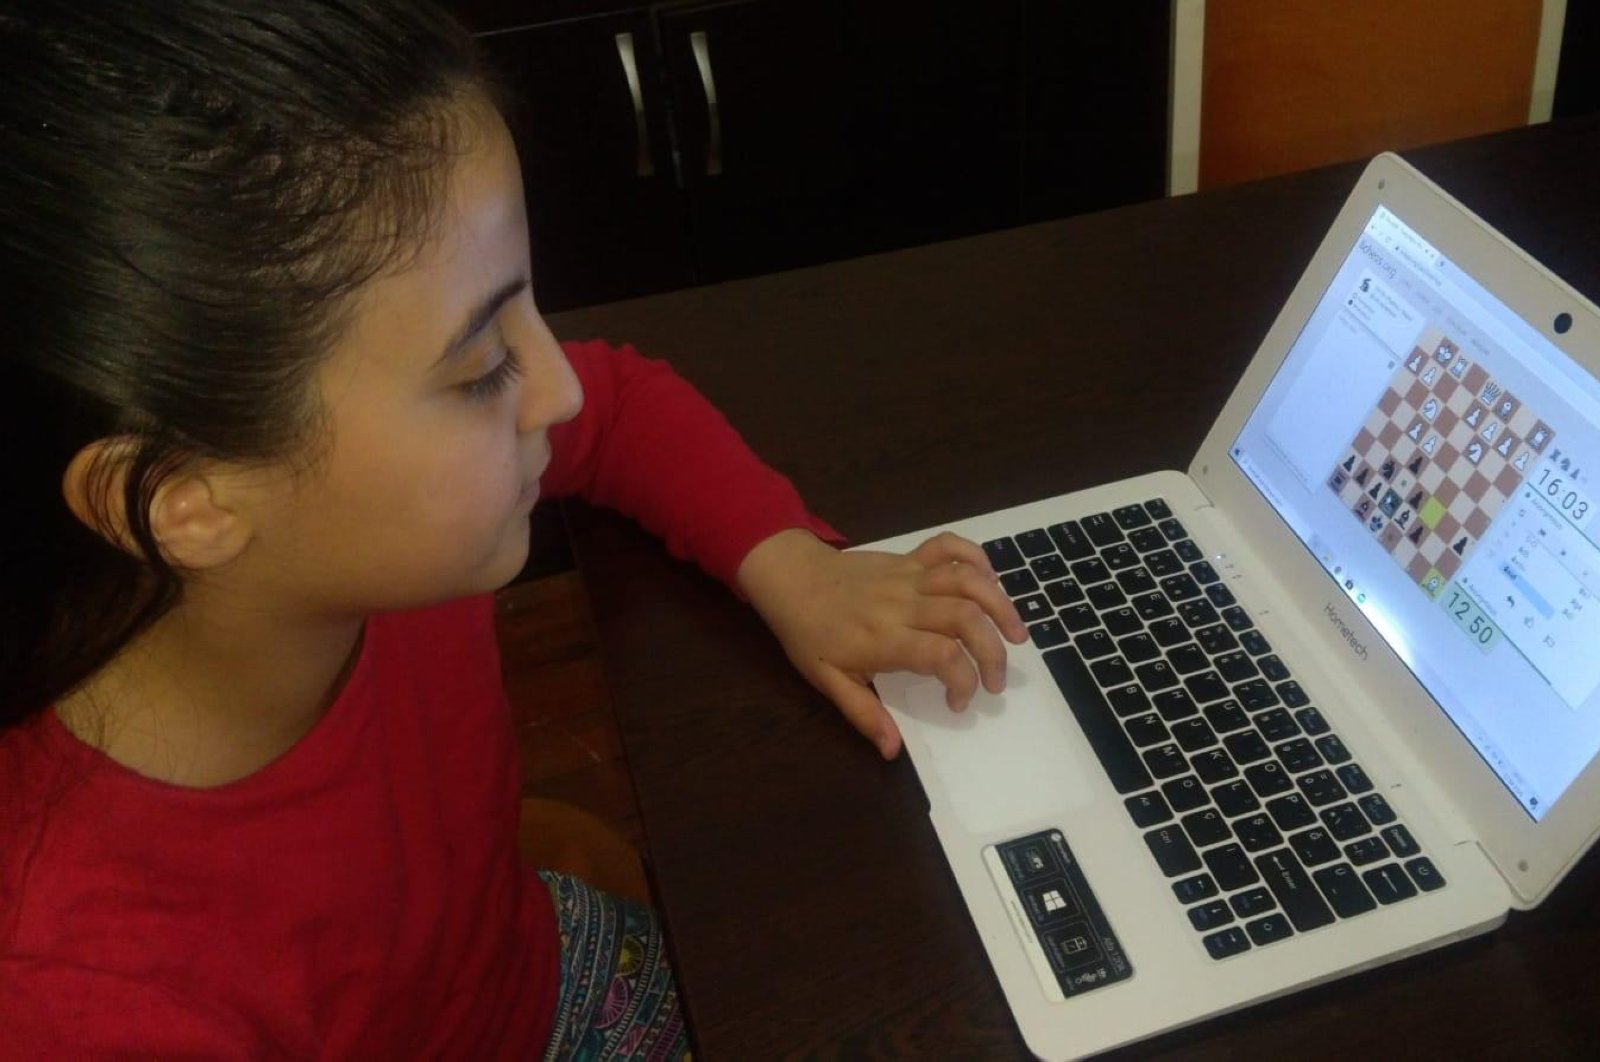 A girl takes part in an online chess tournament in Sivas, Turkey, April 24, 2020. (İHA Photo)